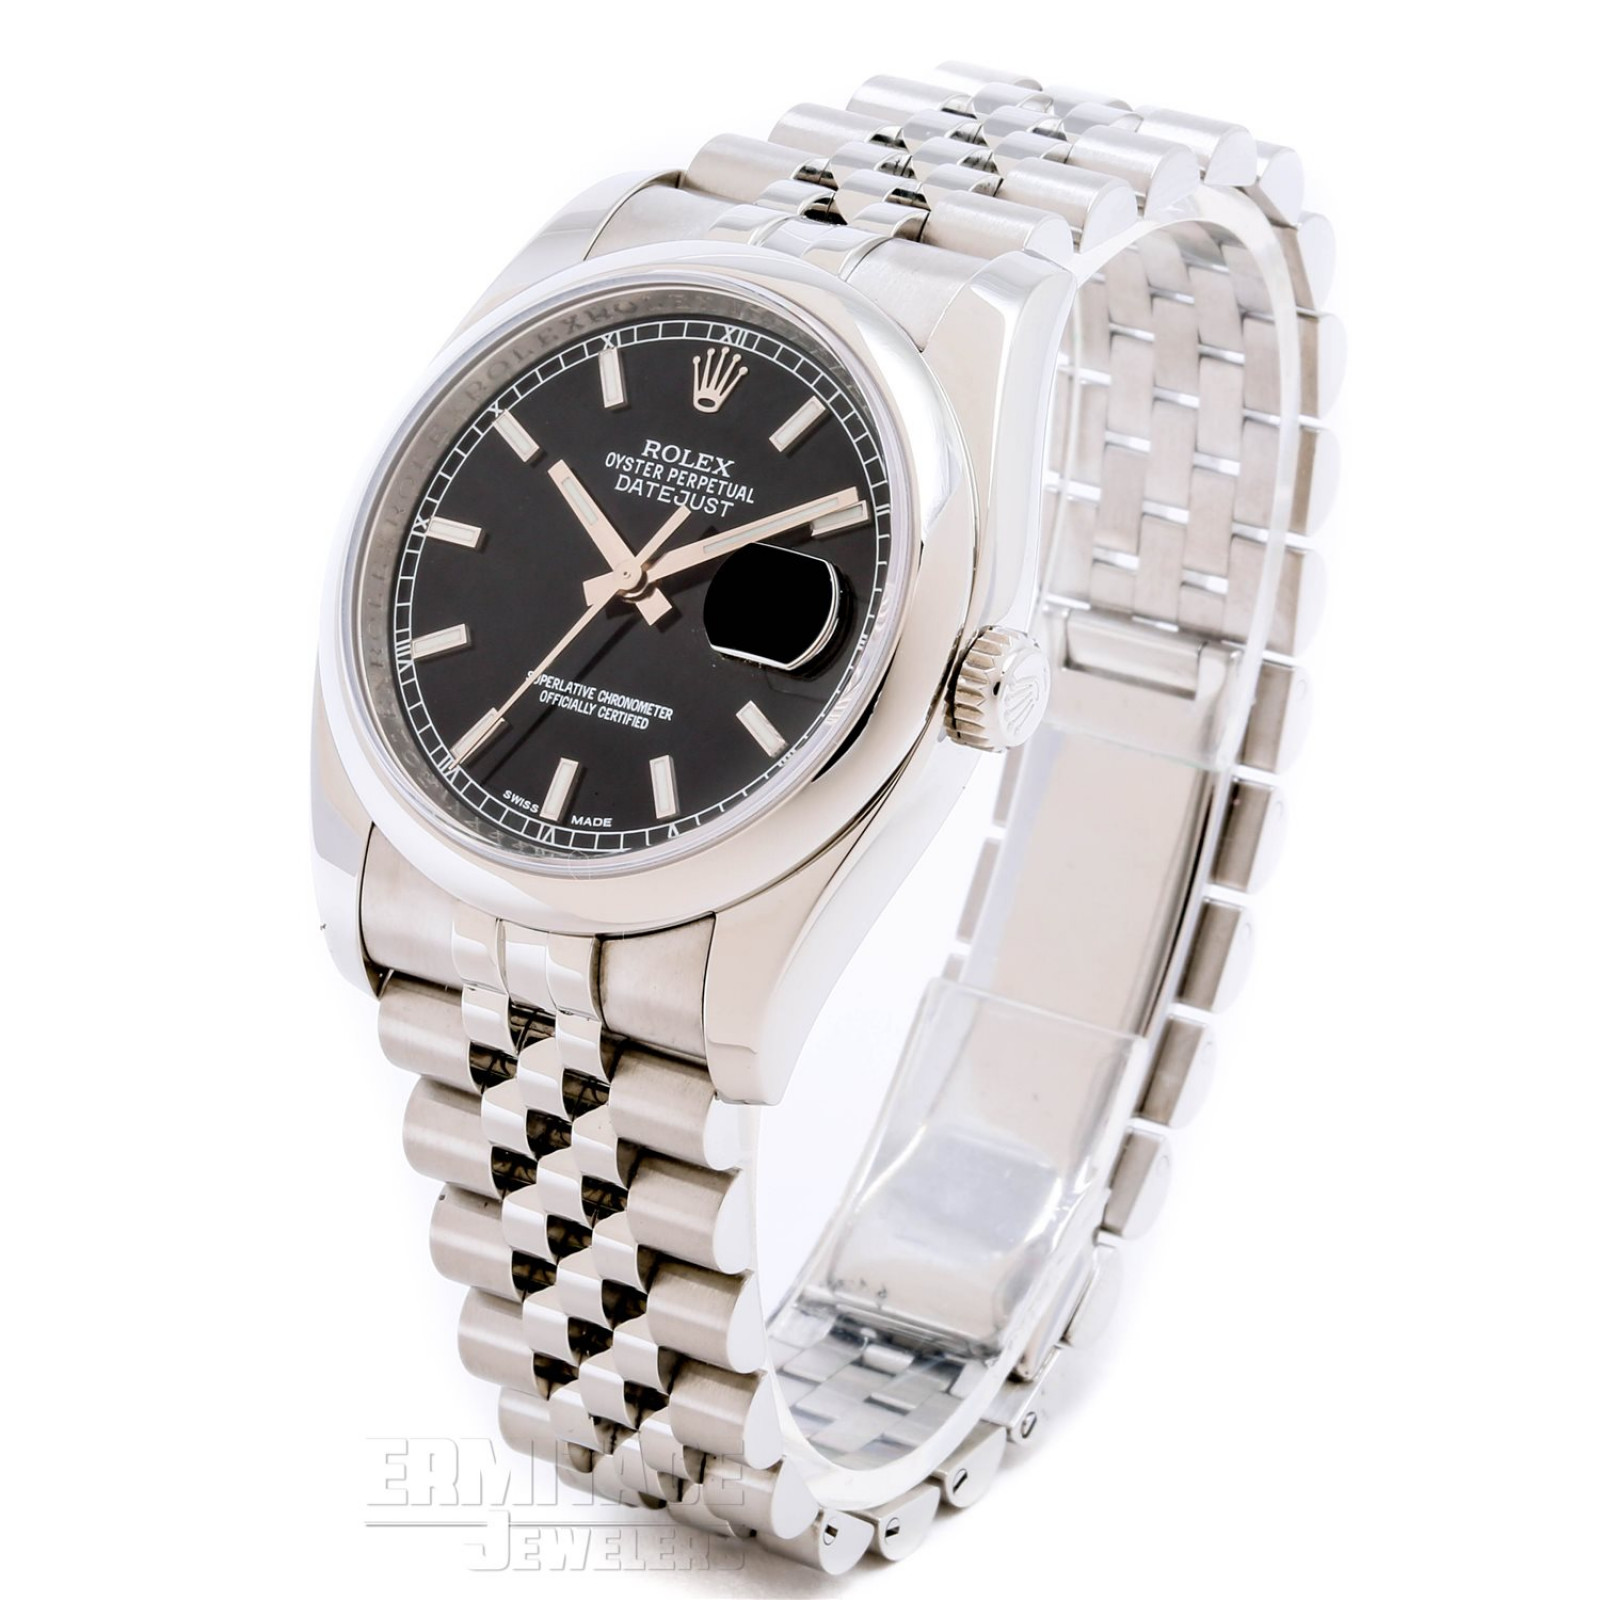 Classic Mens Rolex Datejust 116200 with Black Dial